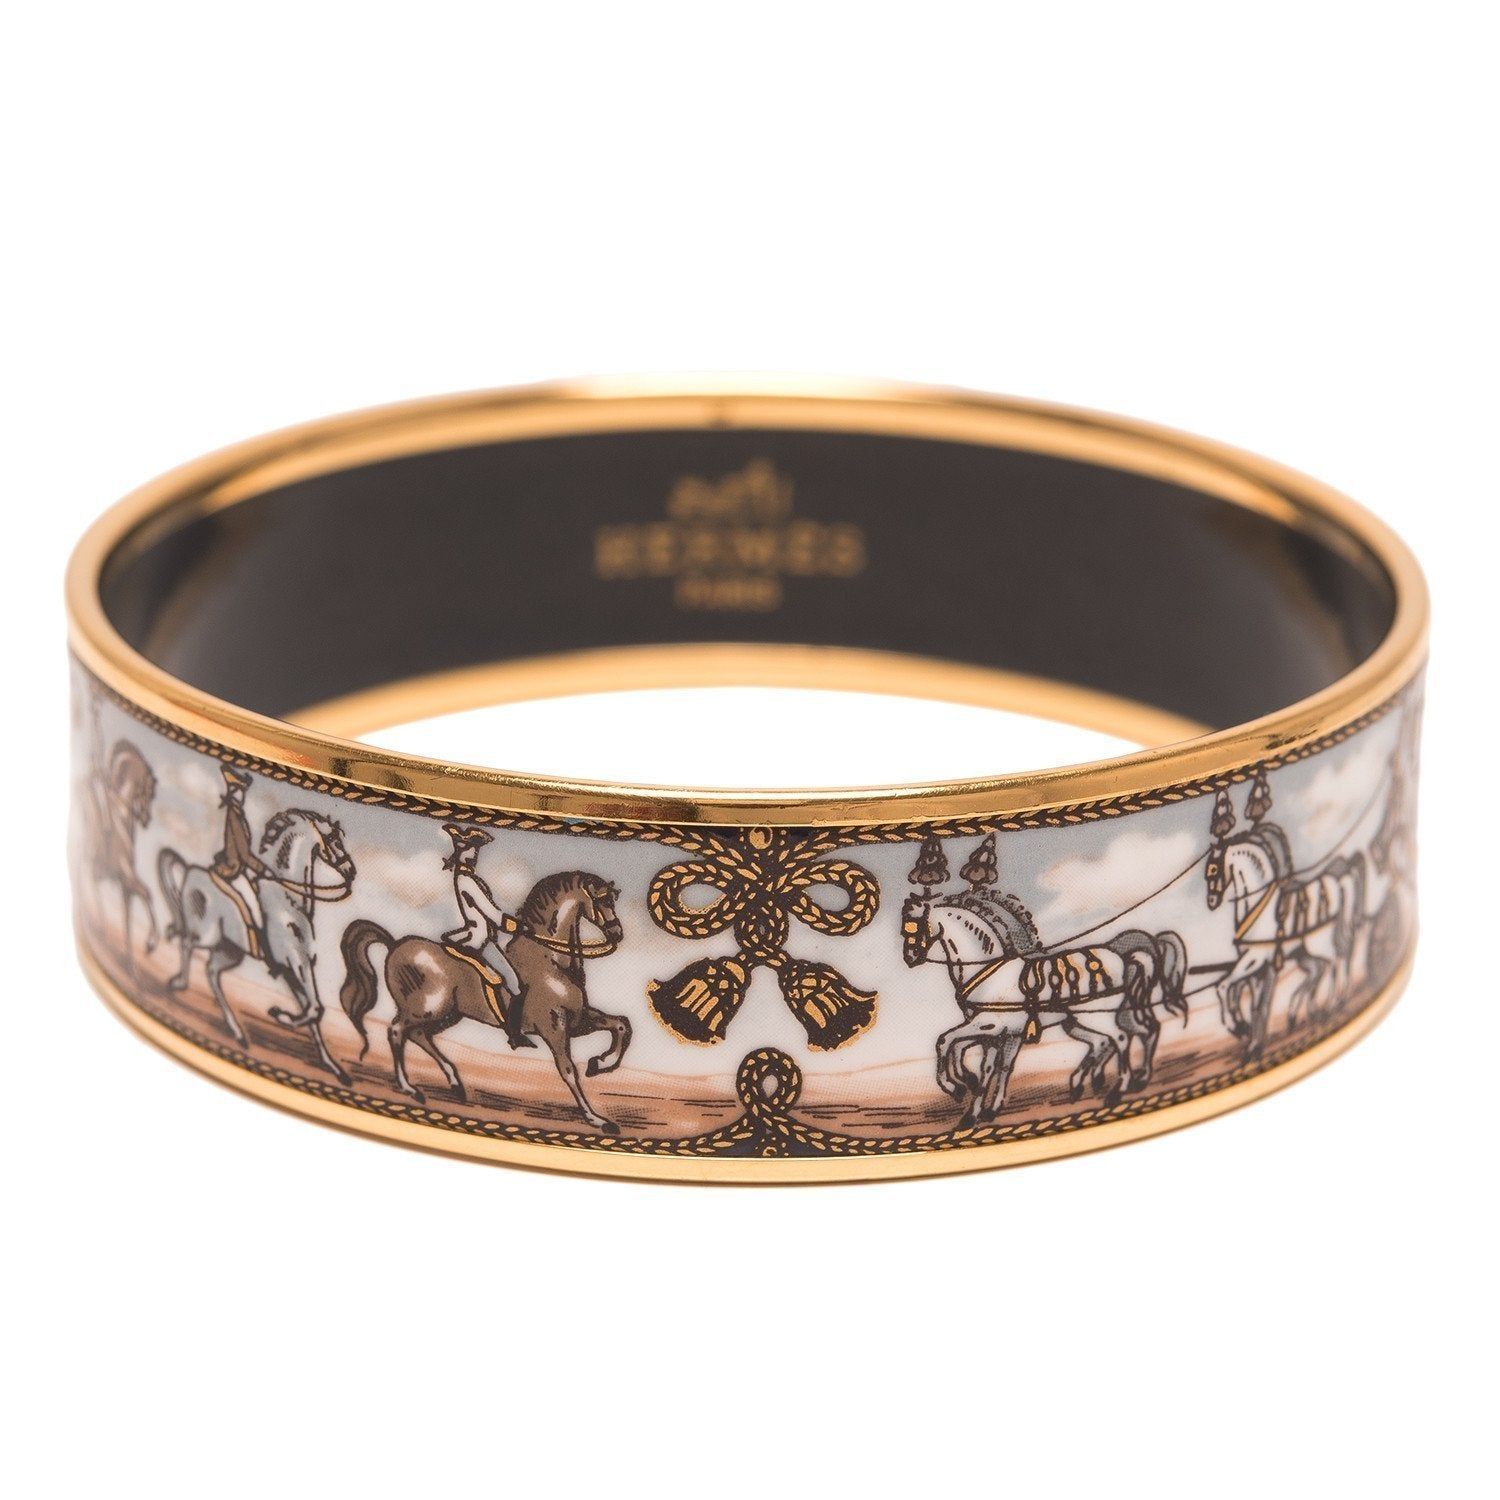 Hermes Horse And Carriage Printed Enamel Wide Bracelet Gm 70 Preloved Excellent Accessories